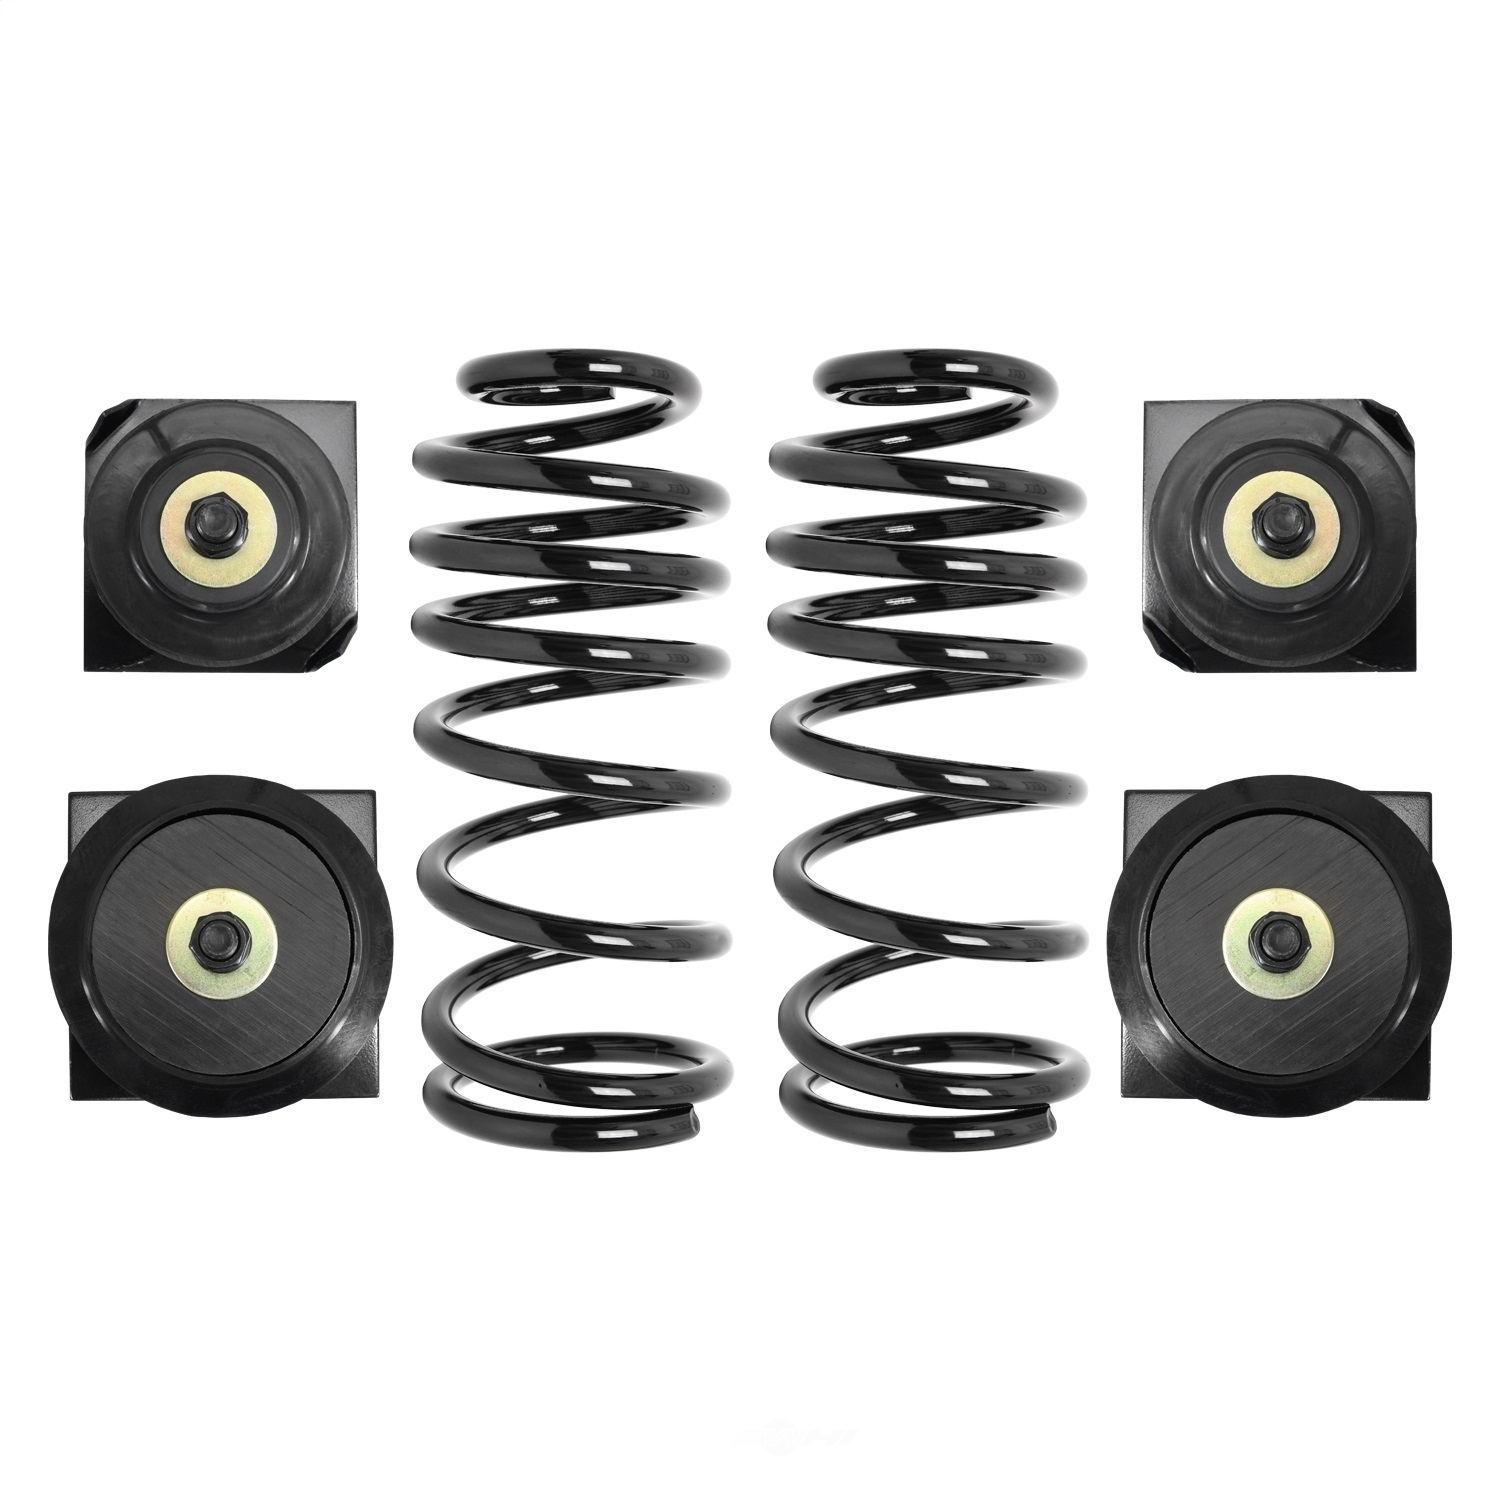 hight resolution of details about air spring to coil spring conversion kit rear fits 97 98 lincoln continental